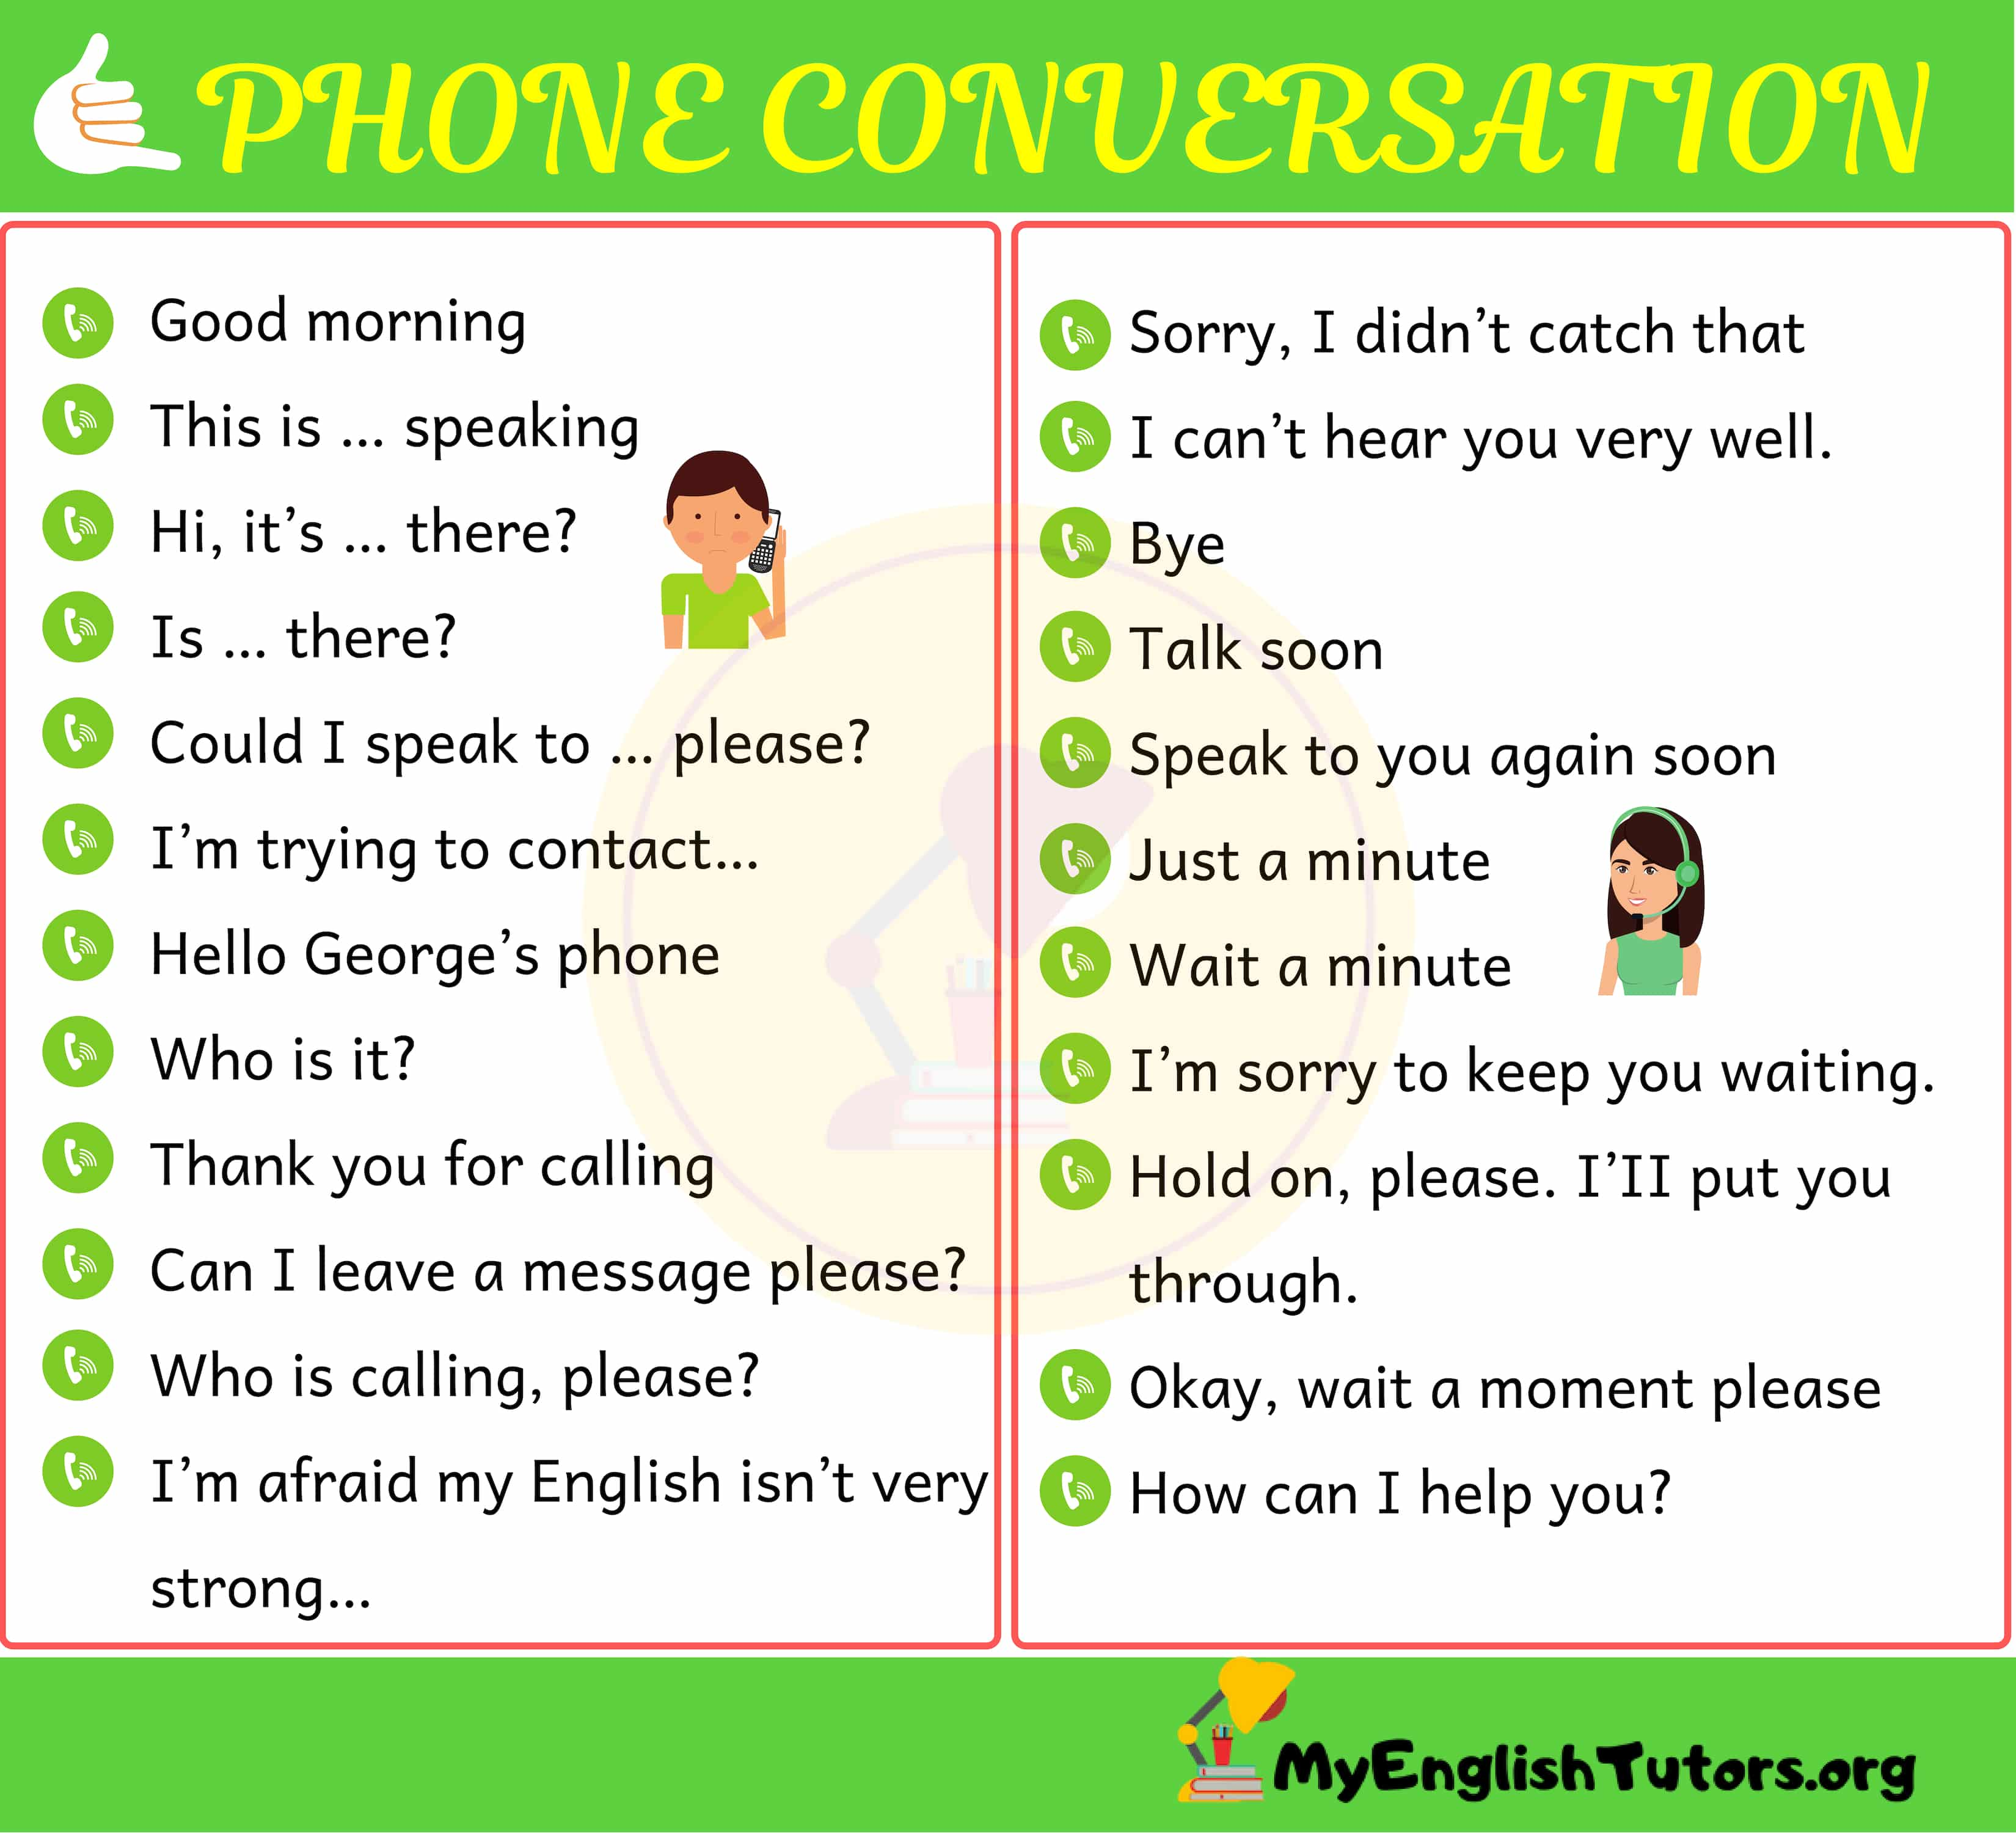 Phone Conversation Useful English Phrases On The Phone